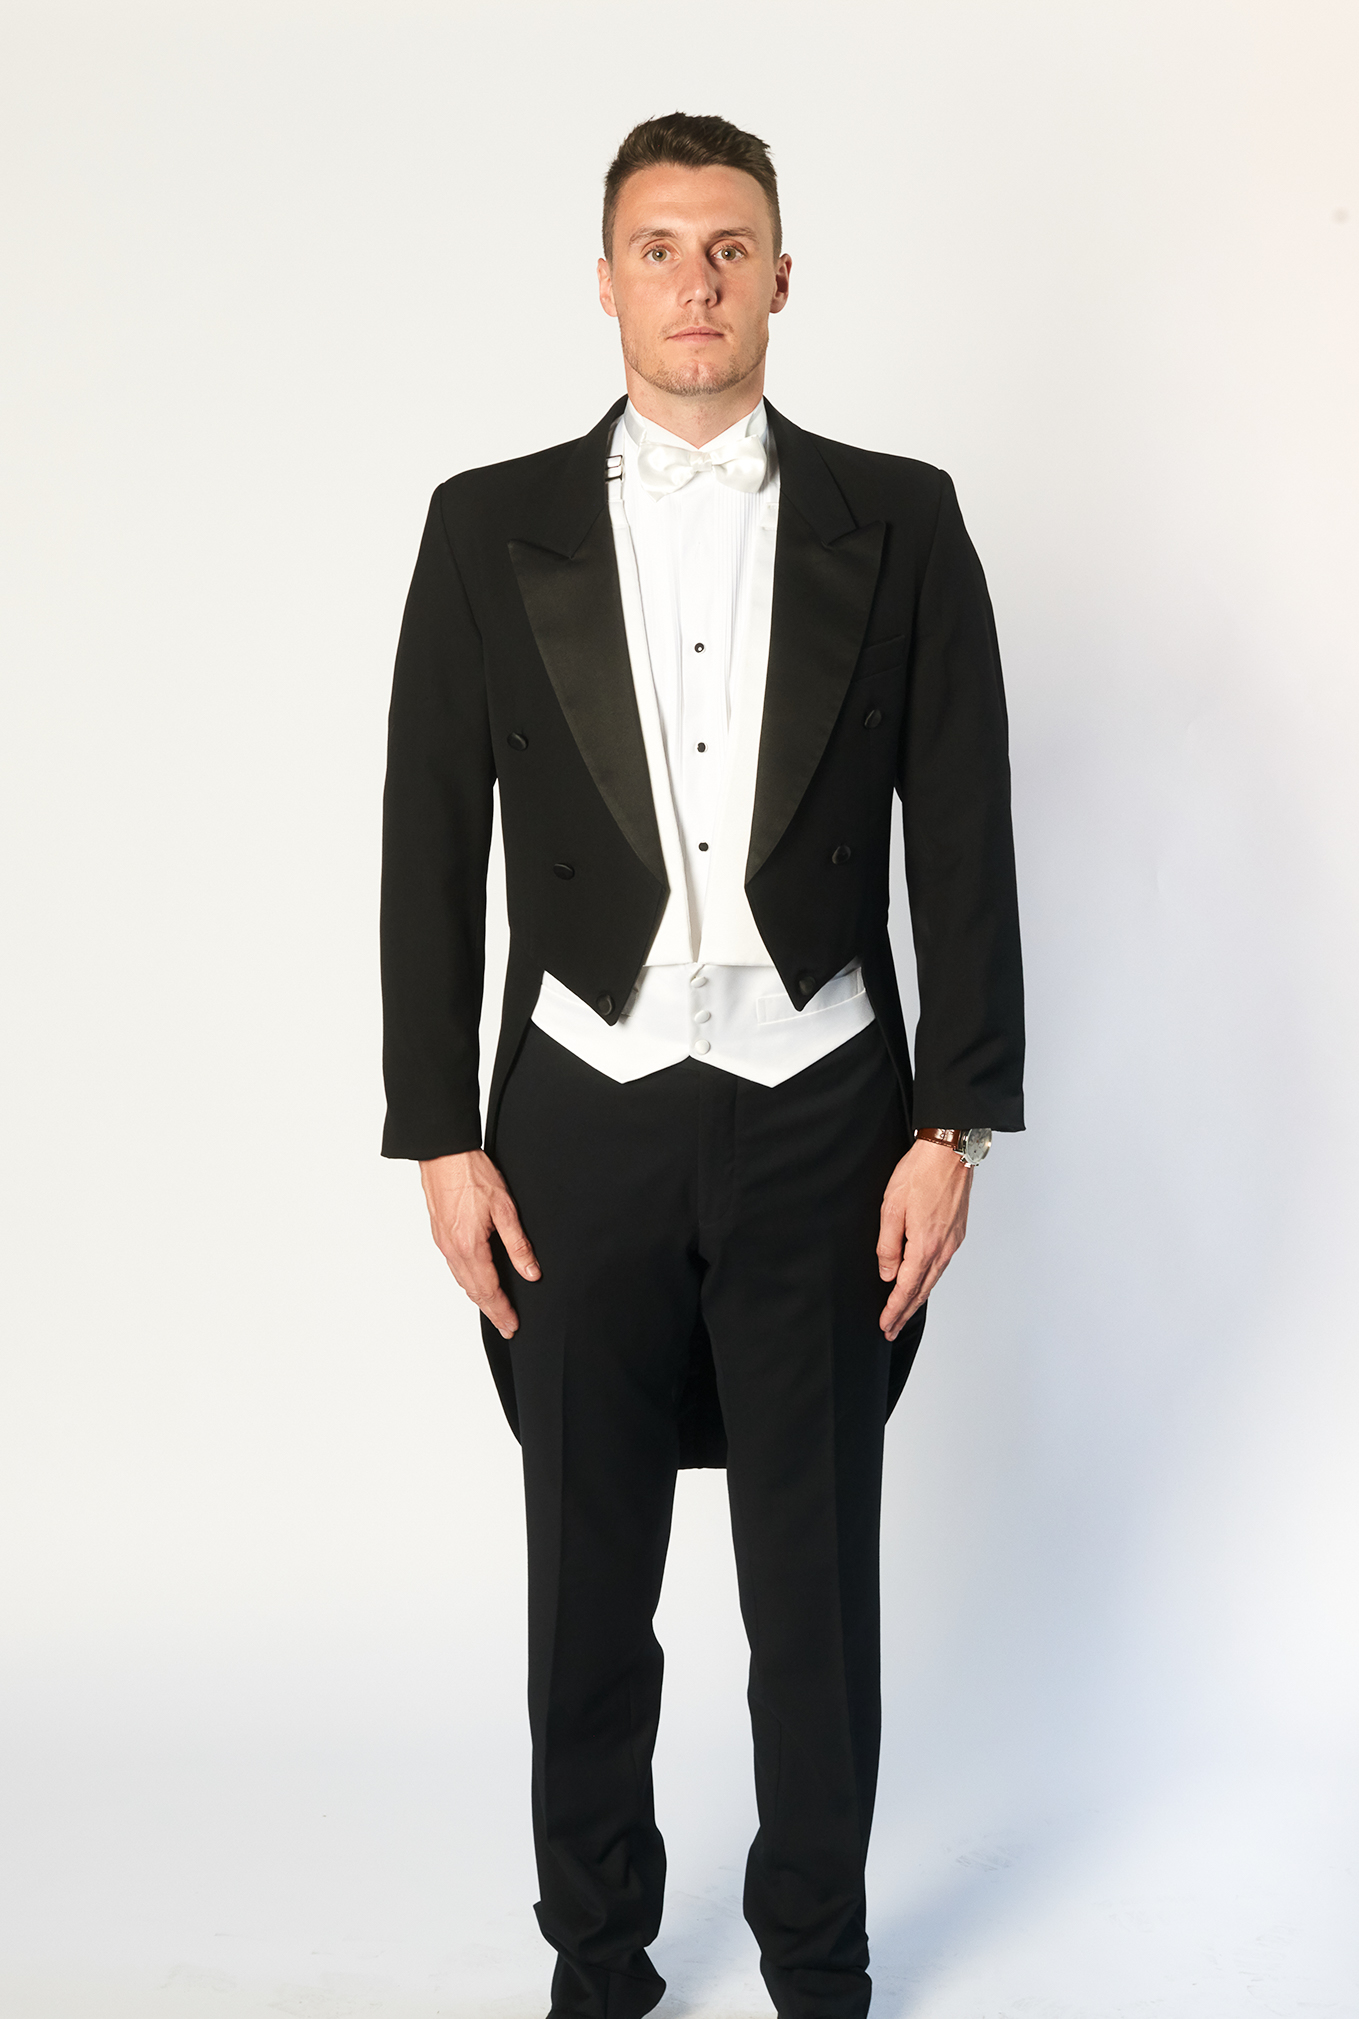 The Tails black suit from Britton's Formal Wear